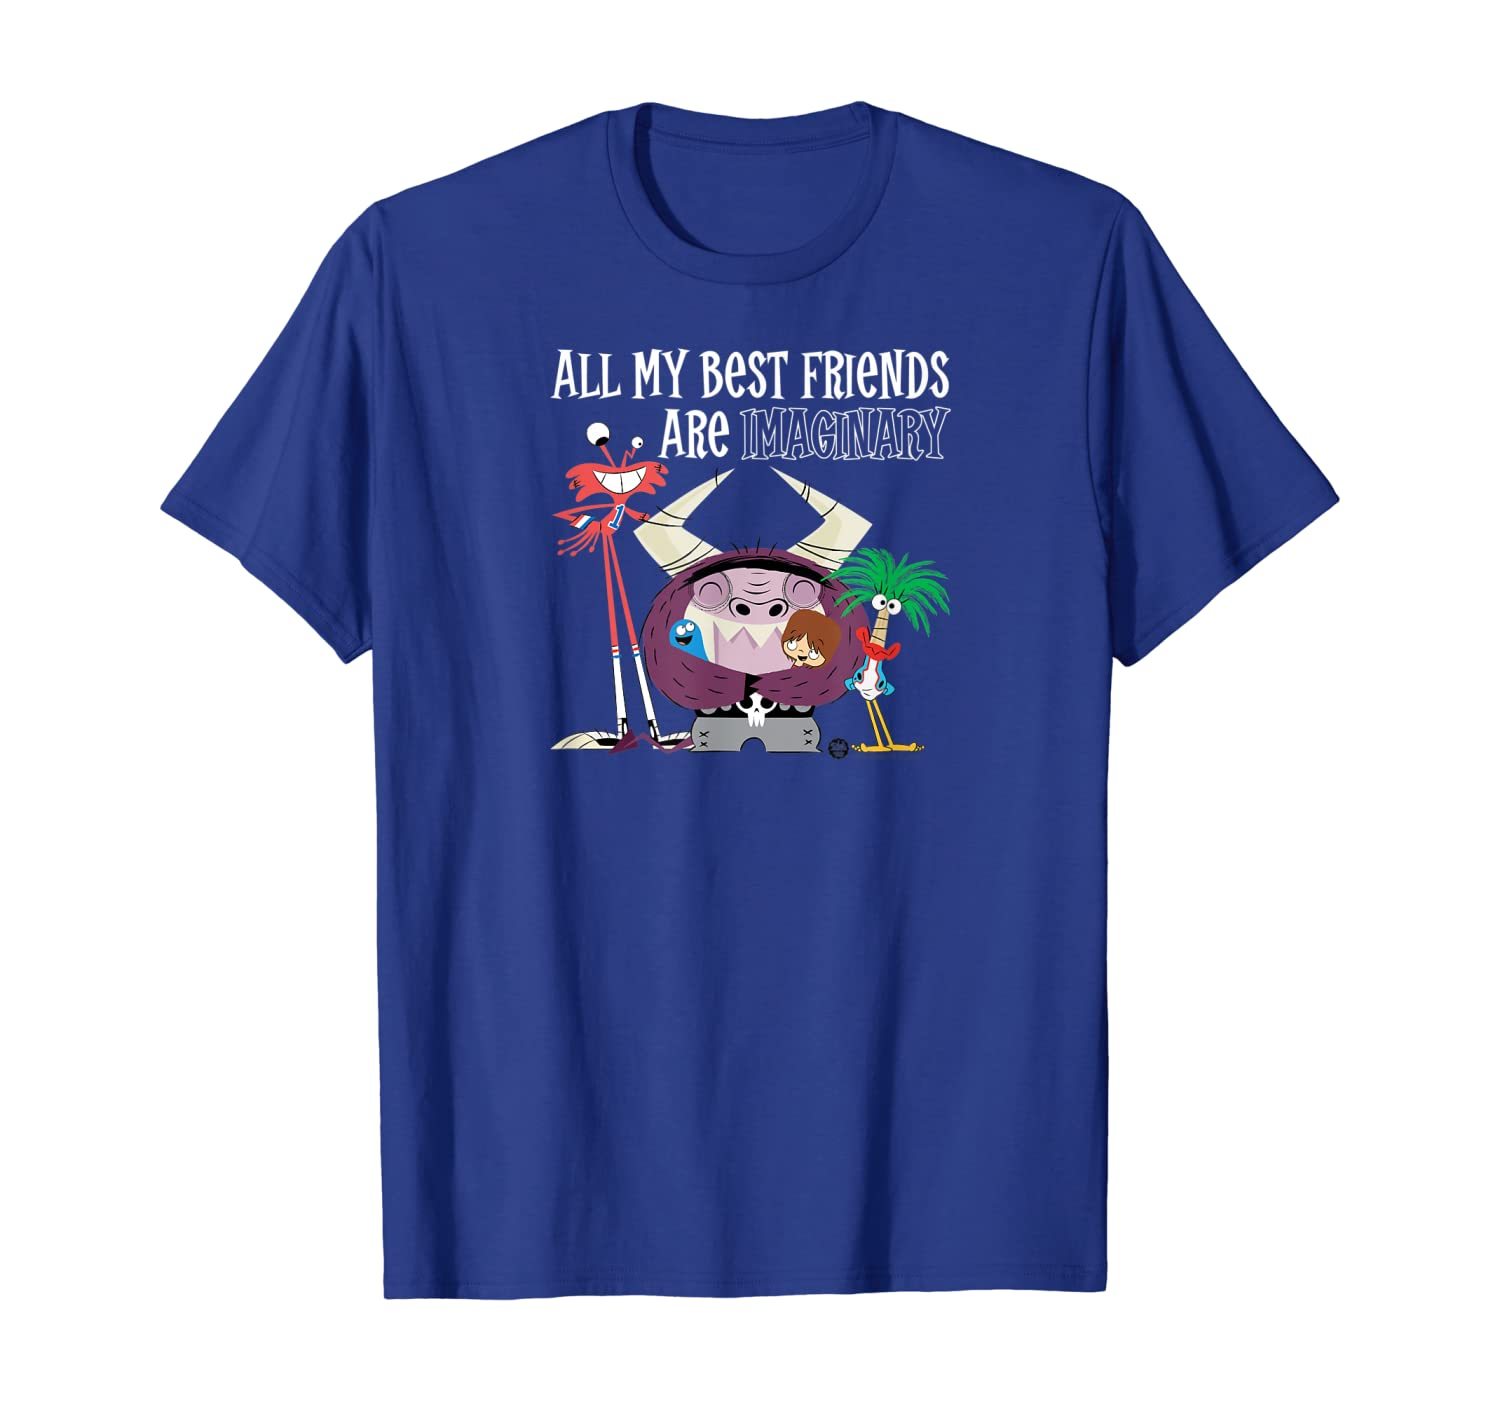 Foster's Home for Imaginary Friends Imaginary Friends T-Shirt